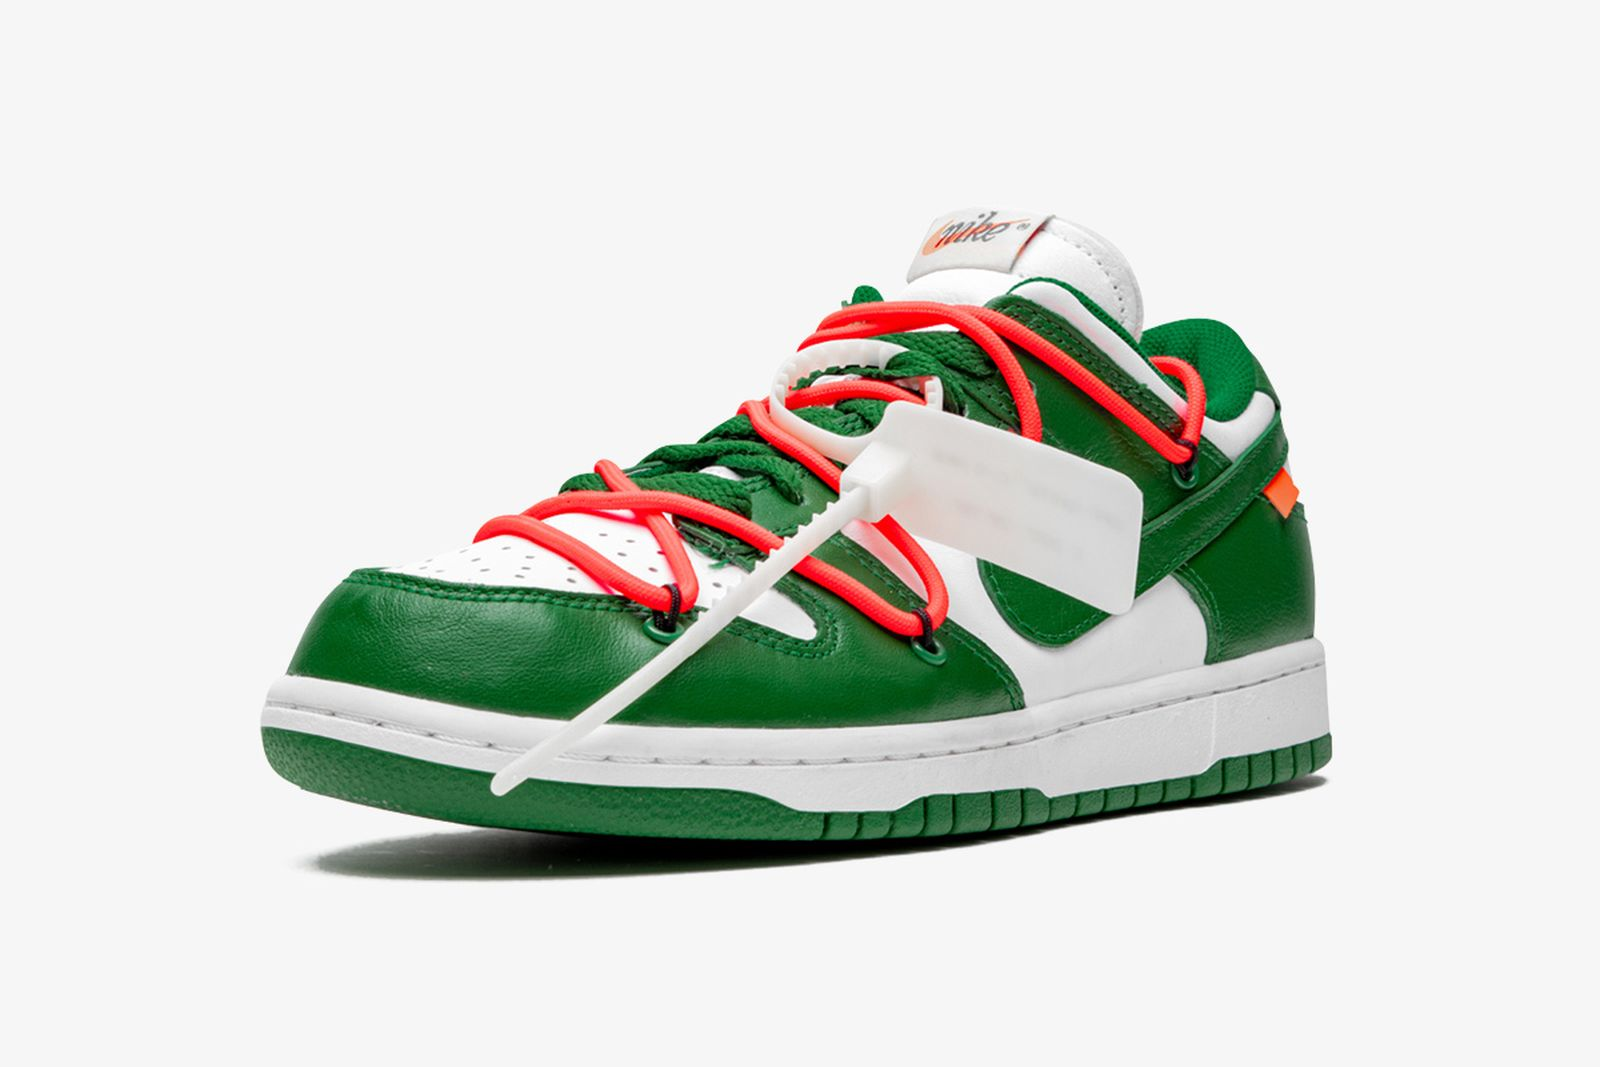 off-white-nike-dunk-low-green-release-date-price-sg-05